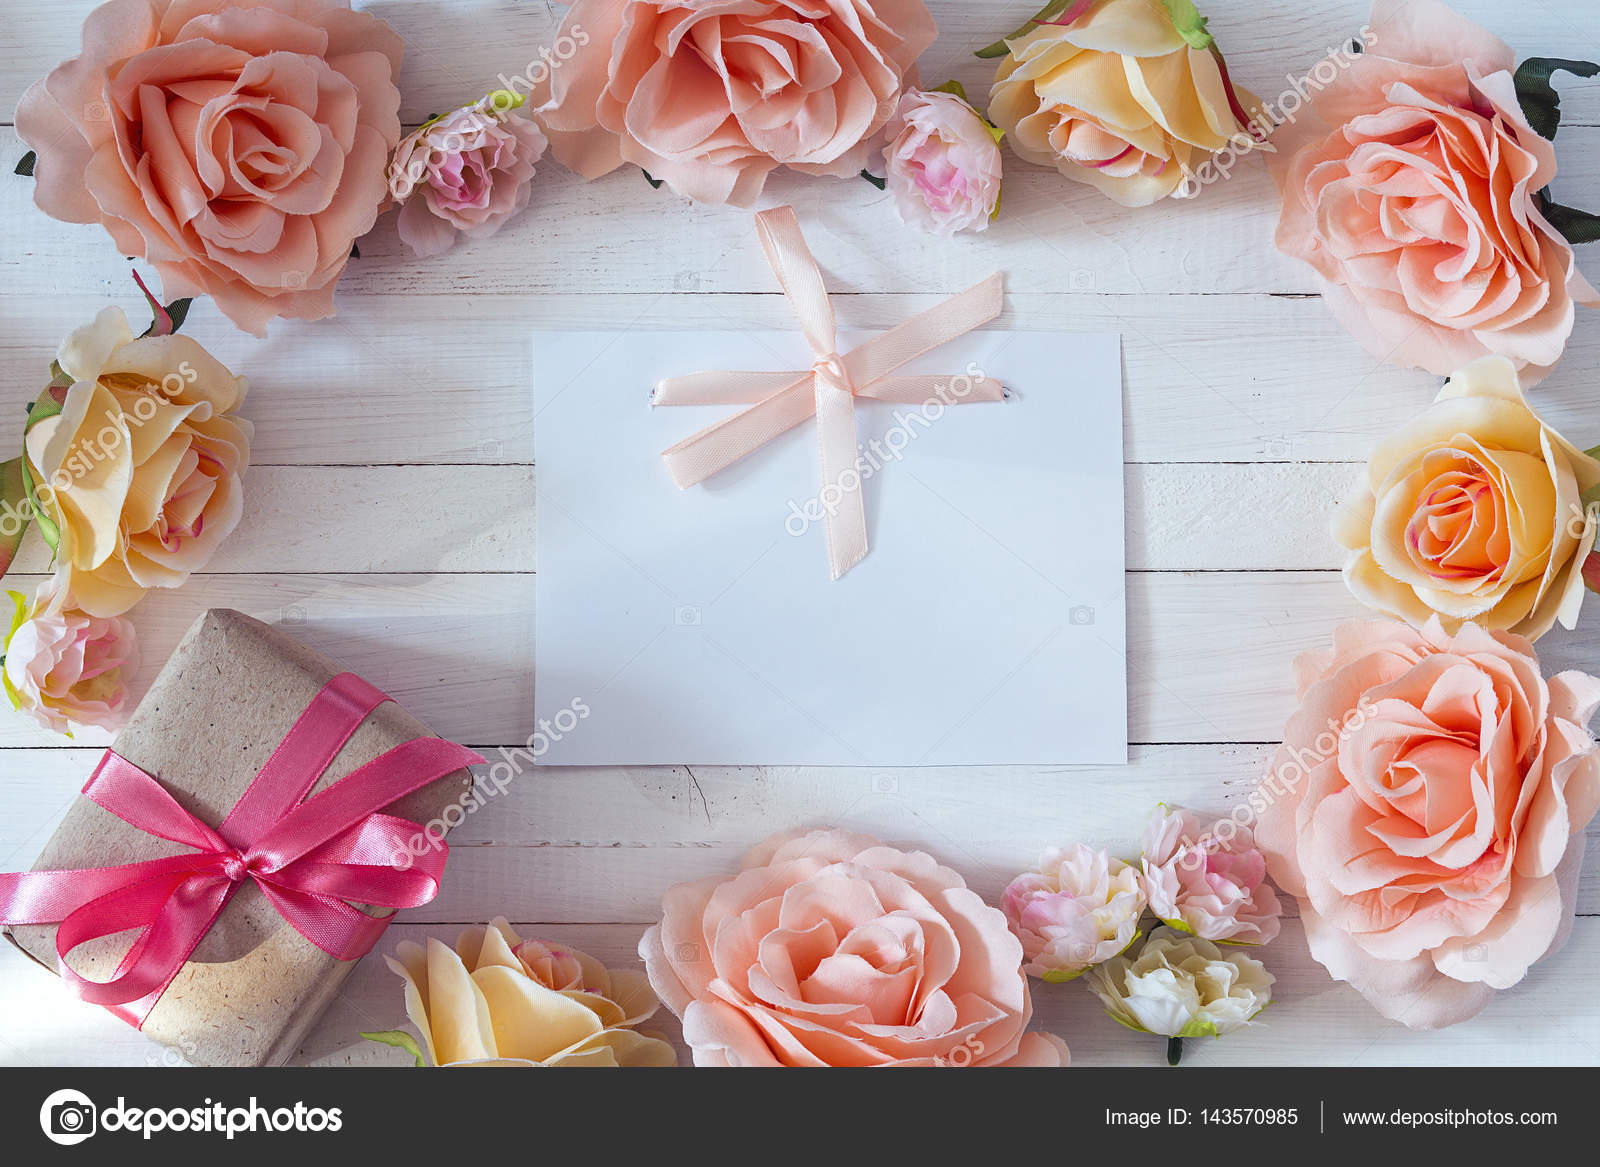 White blank card with a pink ribbon gift box and rose flowers o white blank card with a pink ribbon gift box and rose flowers o stock mightylinksfo